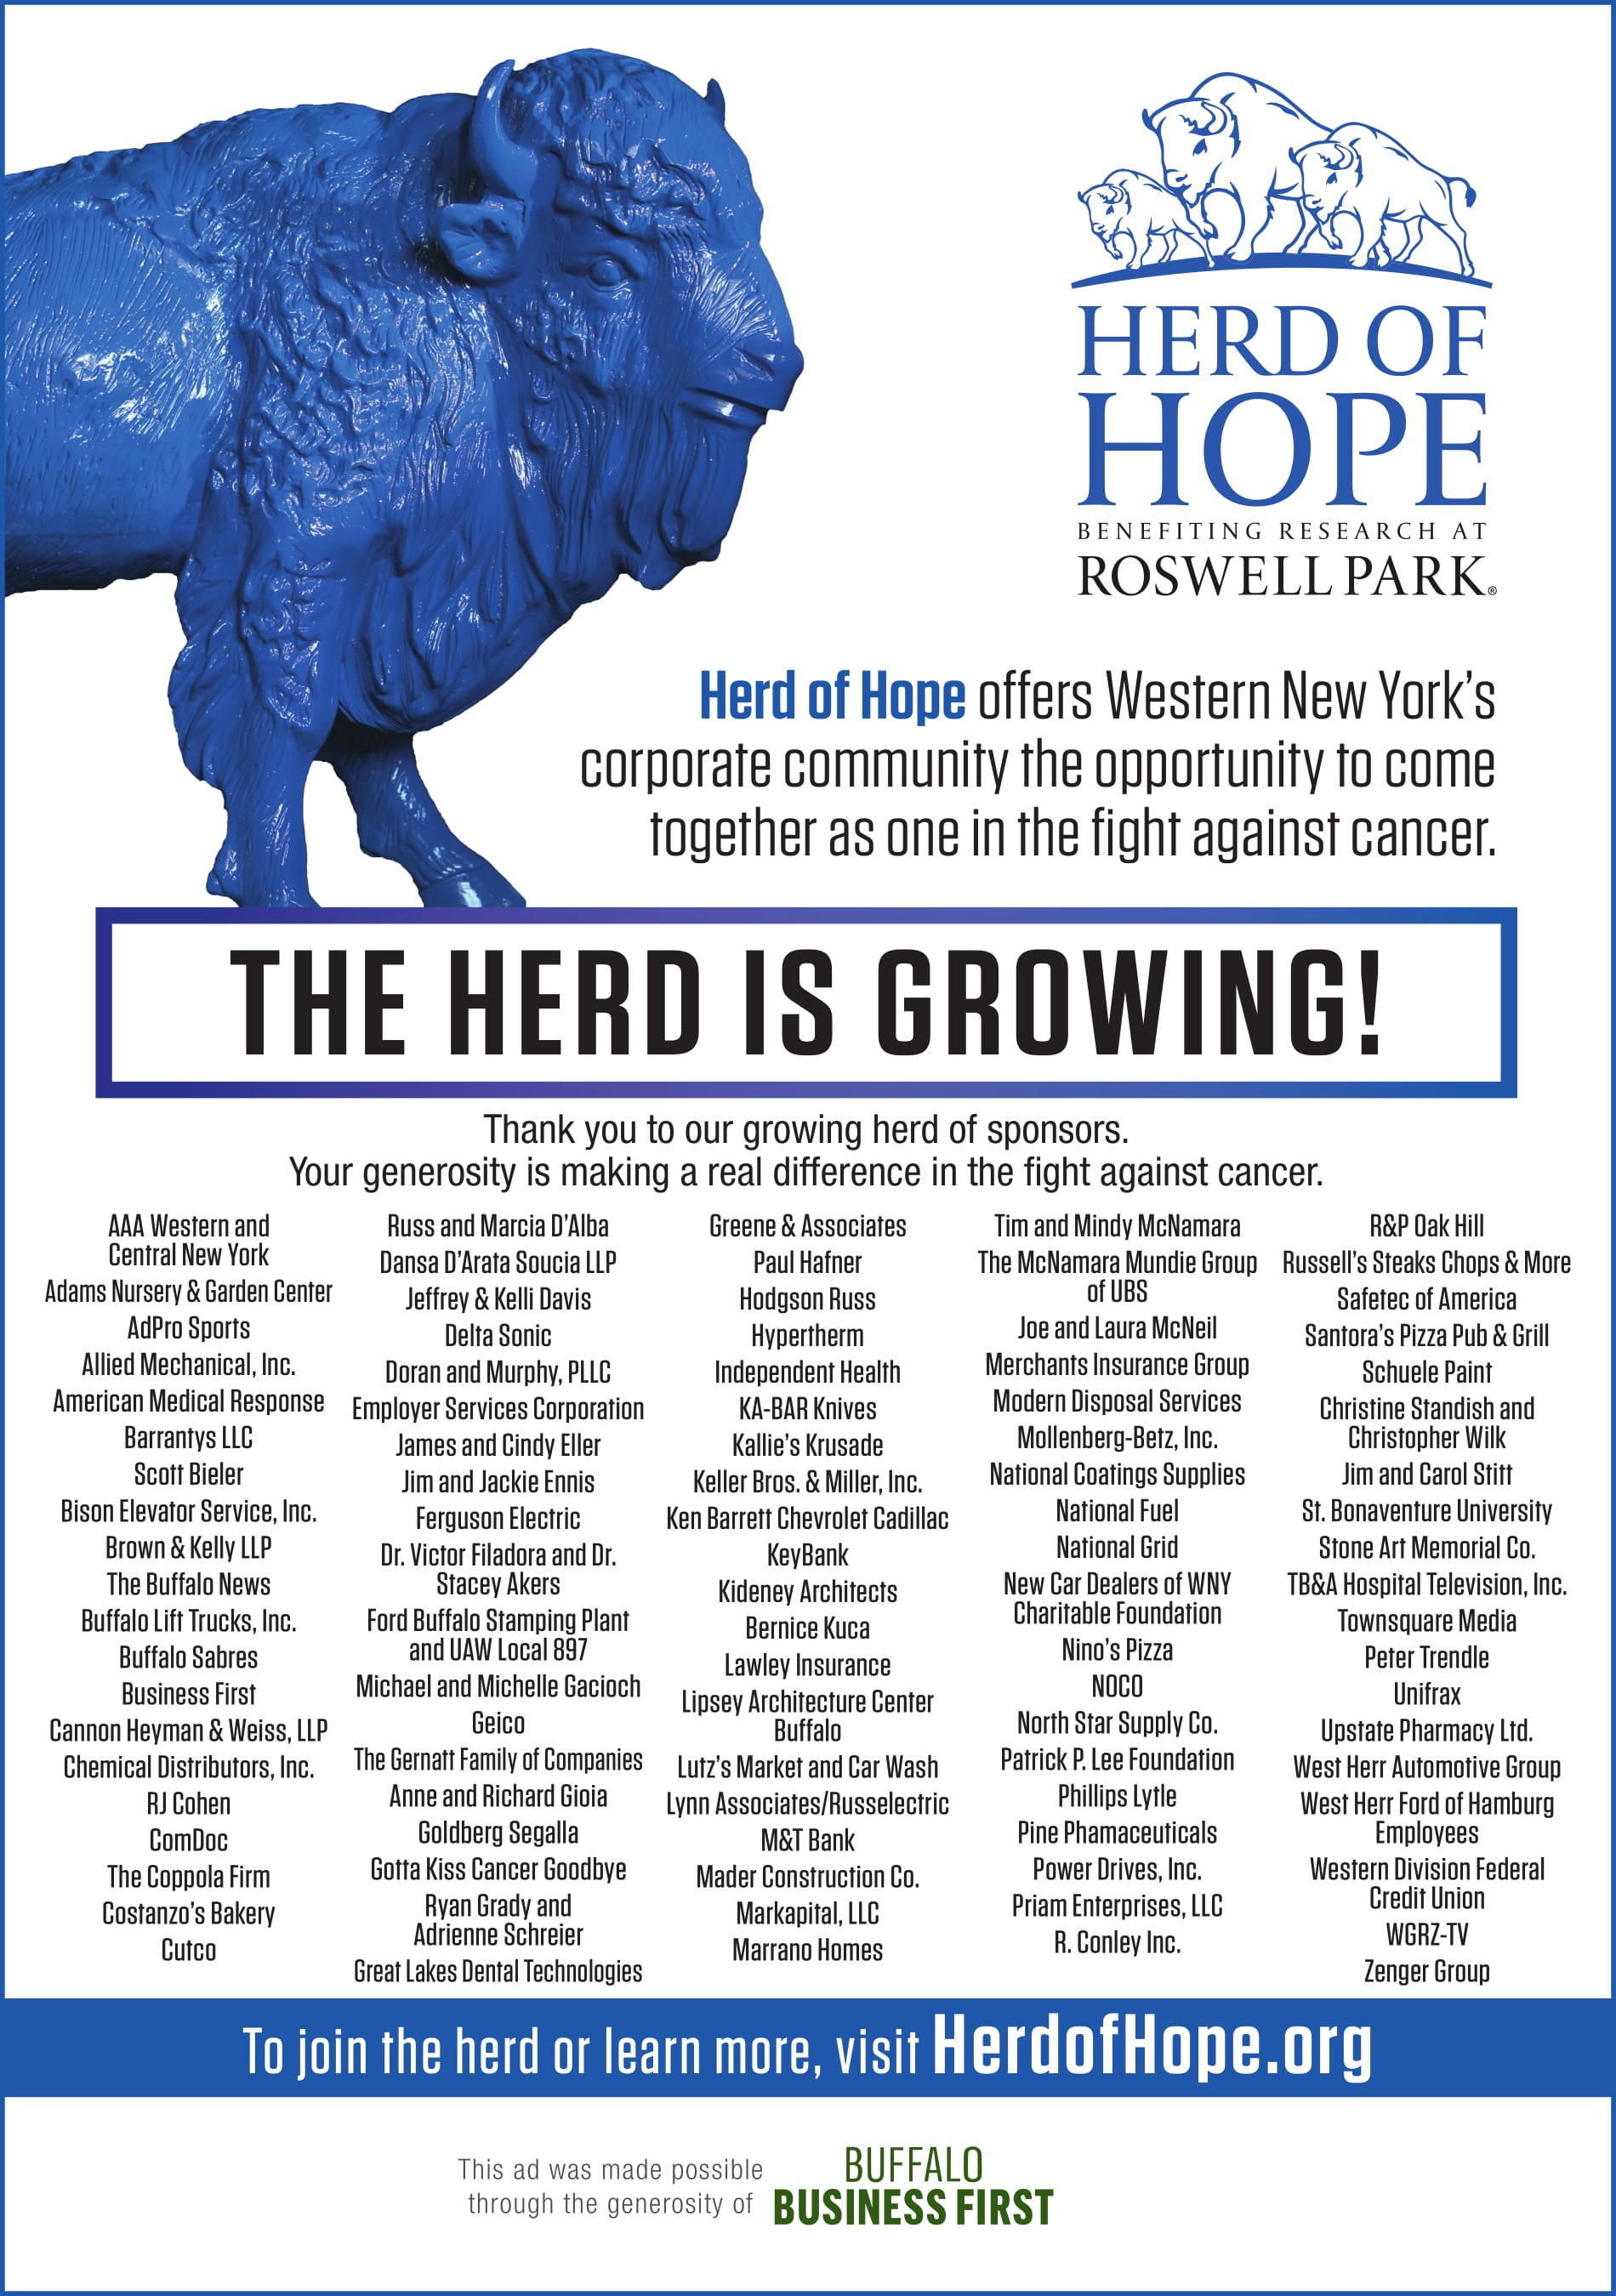 PROUD TO BE PART OF THE GROWING HERD OF HOPE